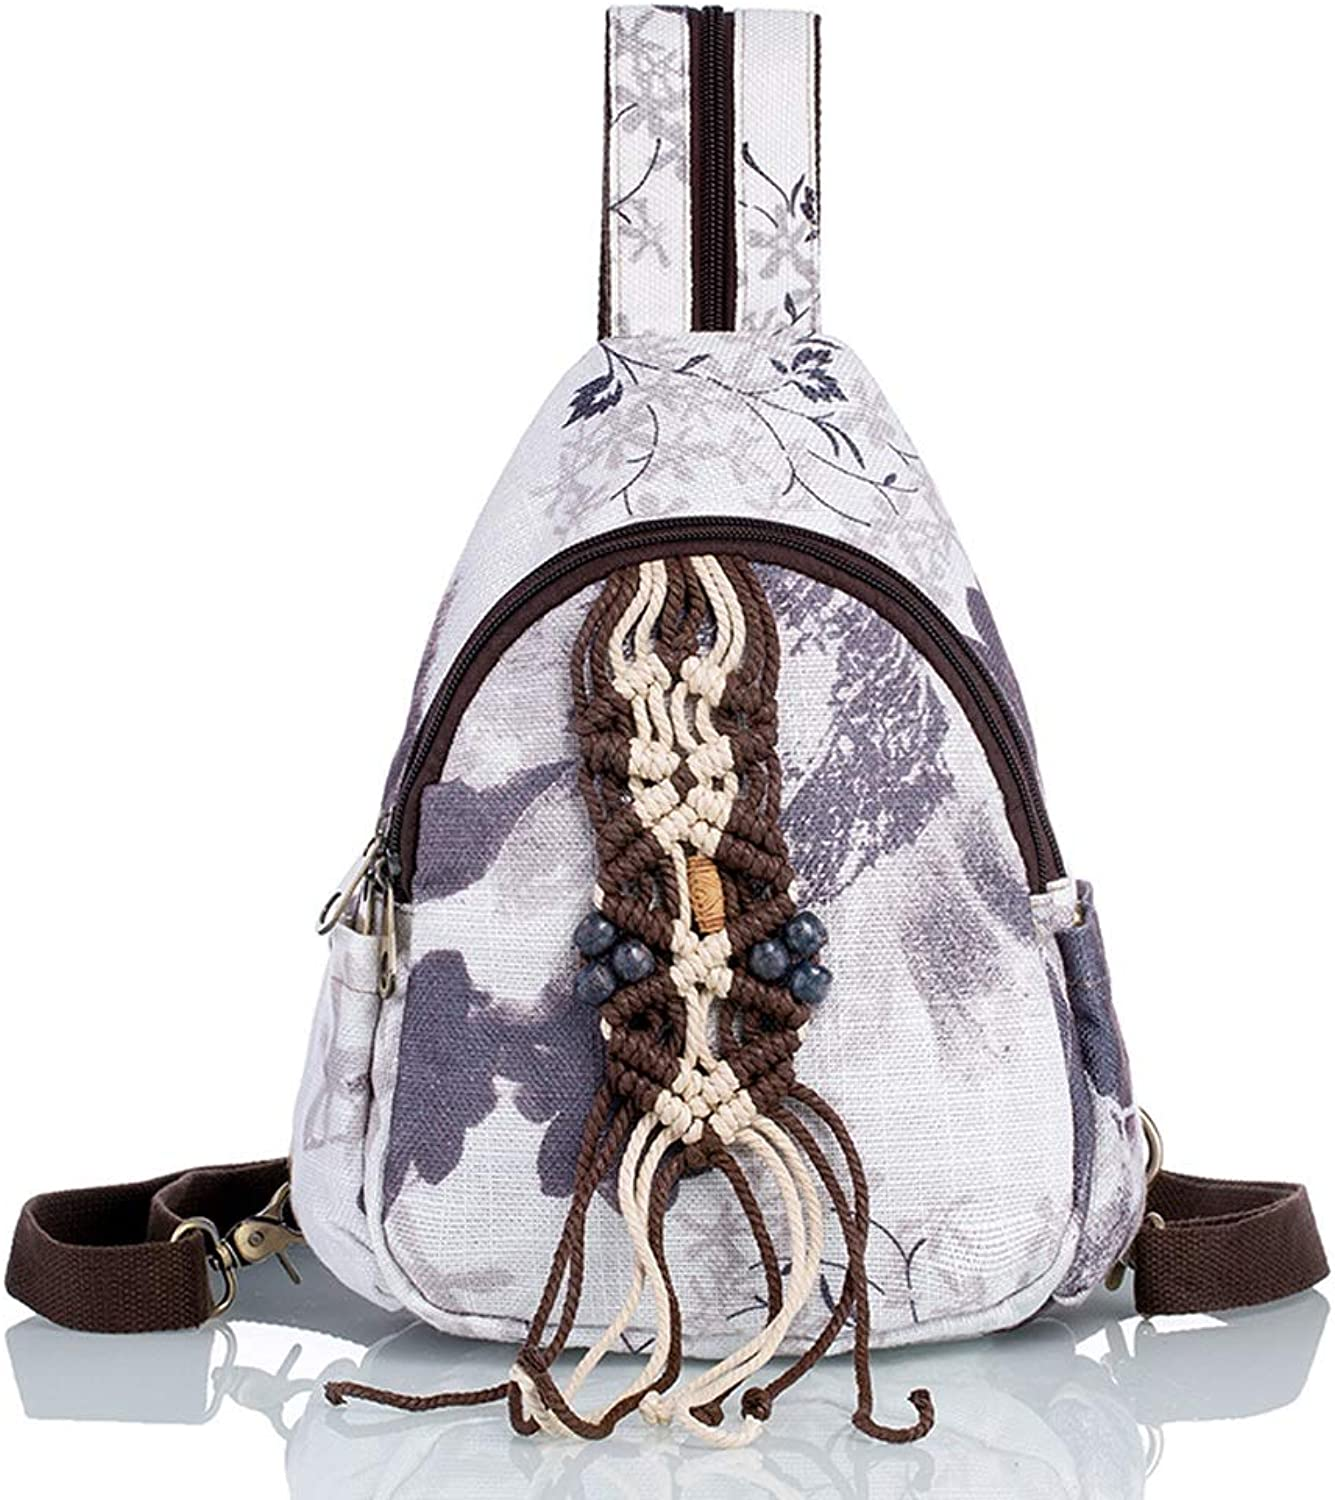 Embroidery Craft National Style Art Small Backpack Female Shoulder Bag Handmade Woven Backpack